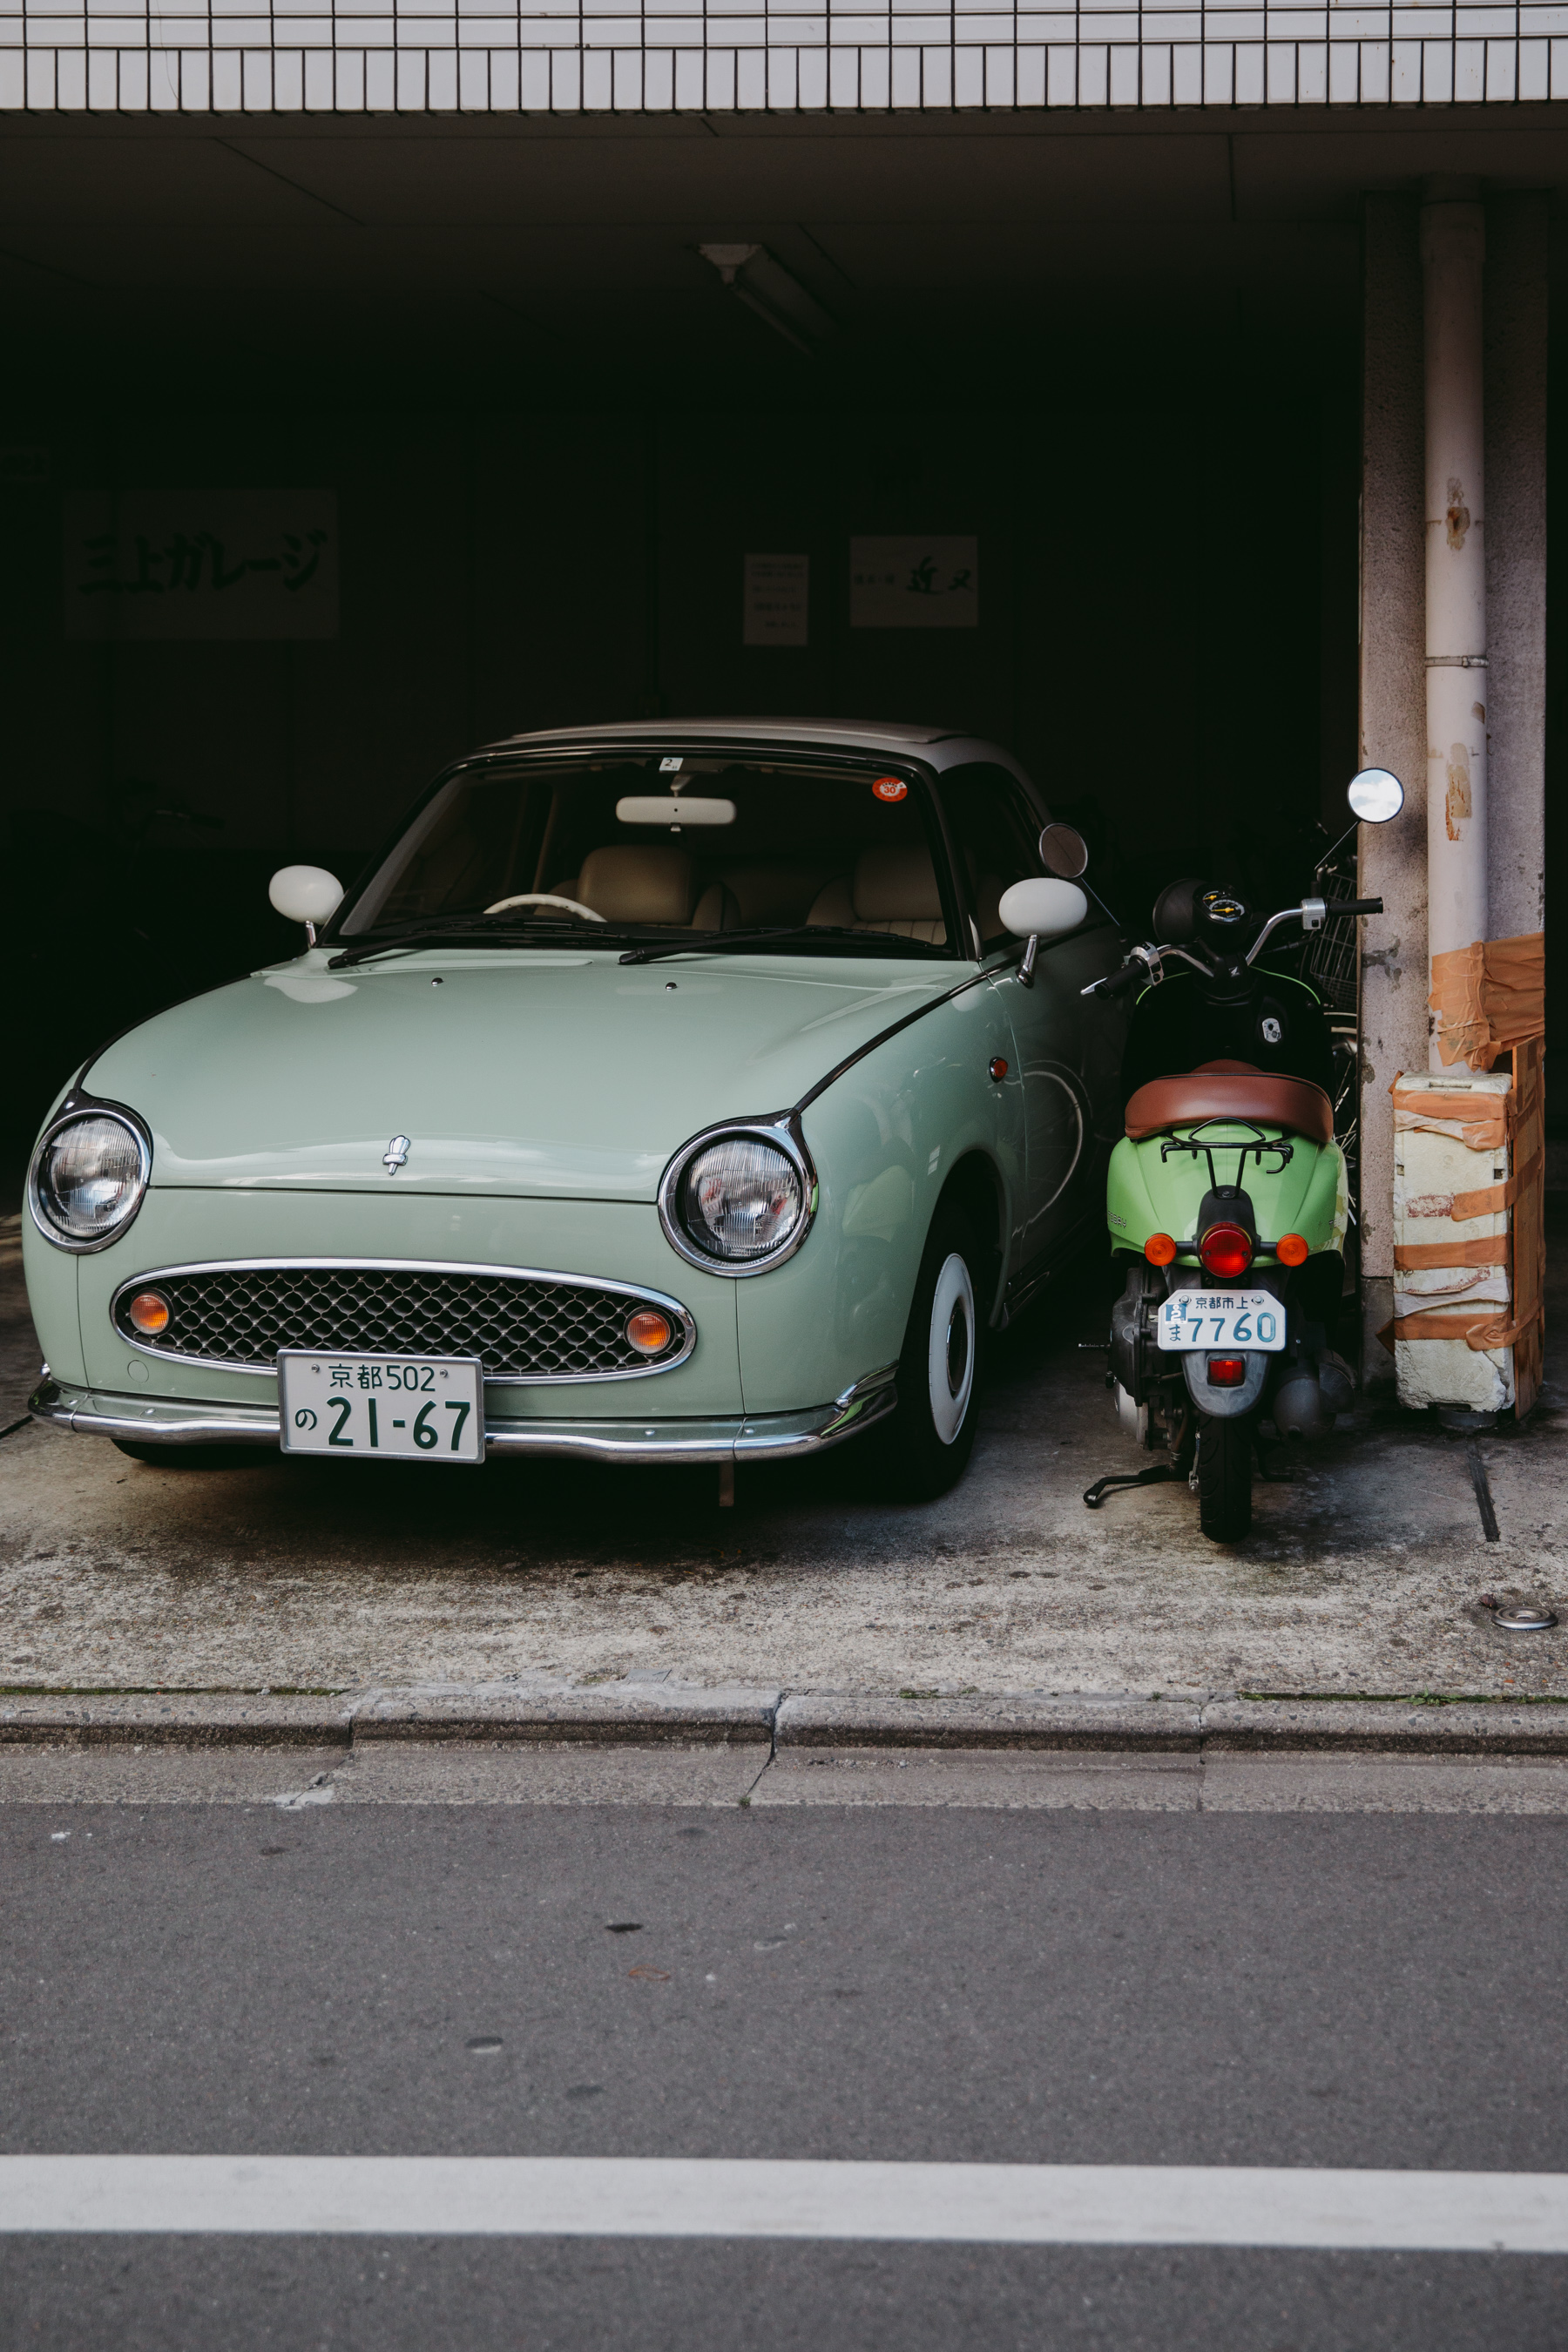 MikeSeehagel-commercial-lifestyle-travel-photography-Japan-39.jpg